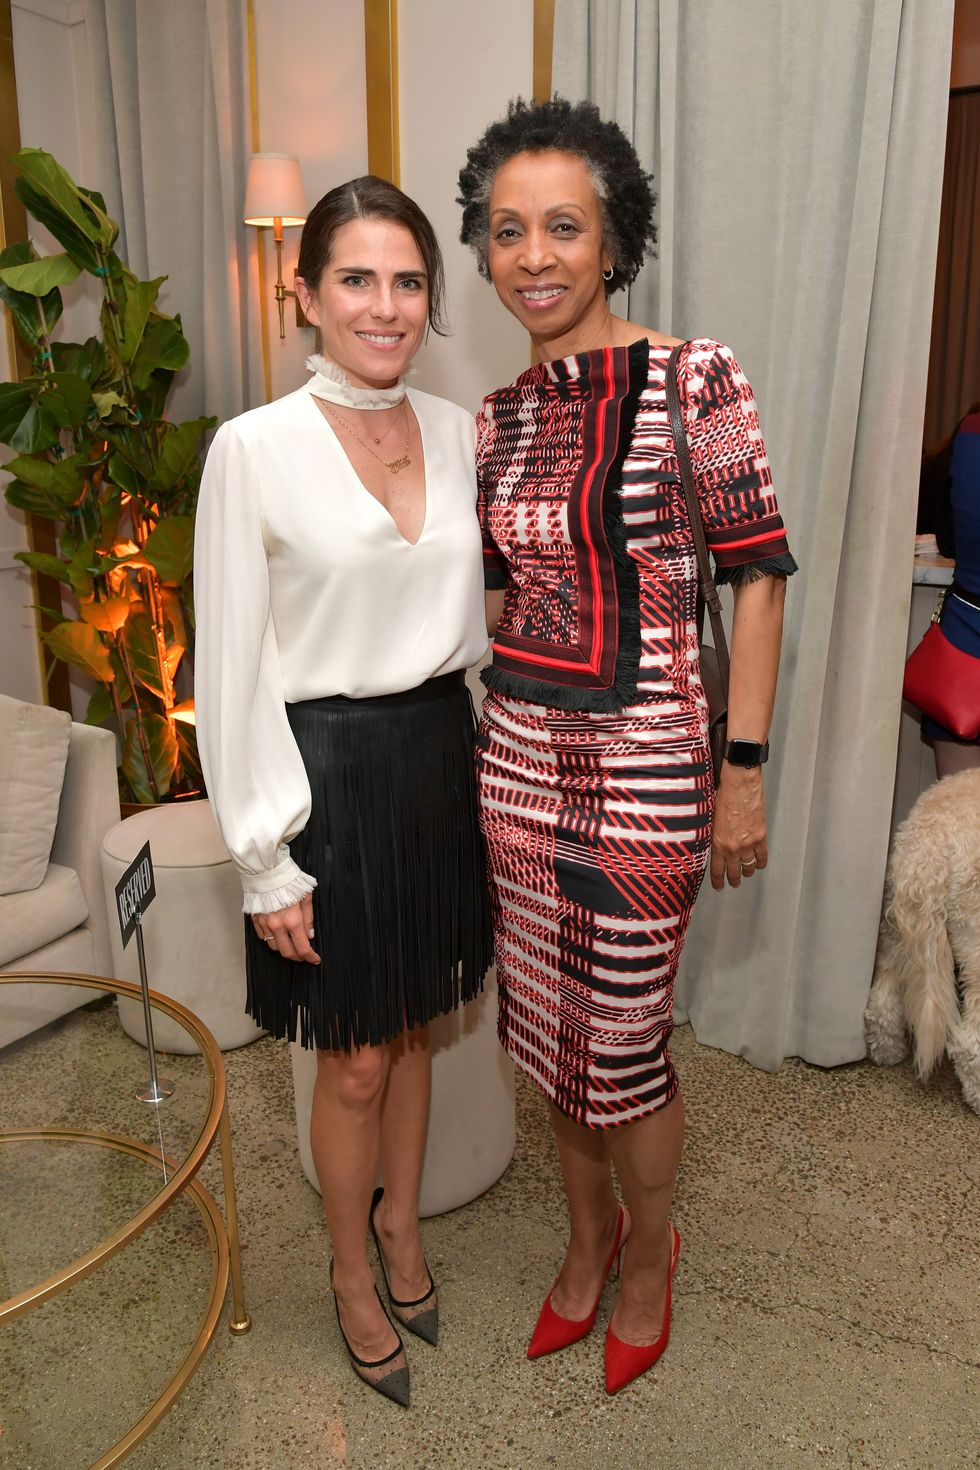 """I feel like history is made on the shoulders of change makers and people who didn't play it safe and who always tried to better the human experience in some way and it was serving others, not themselves,"" actress Karla Souza, pictured here (left) with Nina Shaw, told us at the Change Makers event in Los Angeles. ""So, for me to be invited into this edition of change makers is very humbling and also motivating to keep being part of that history of people who impact society in that way."""